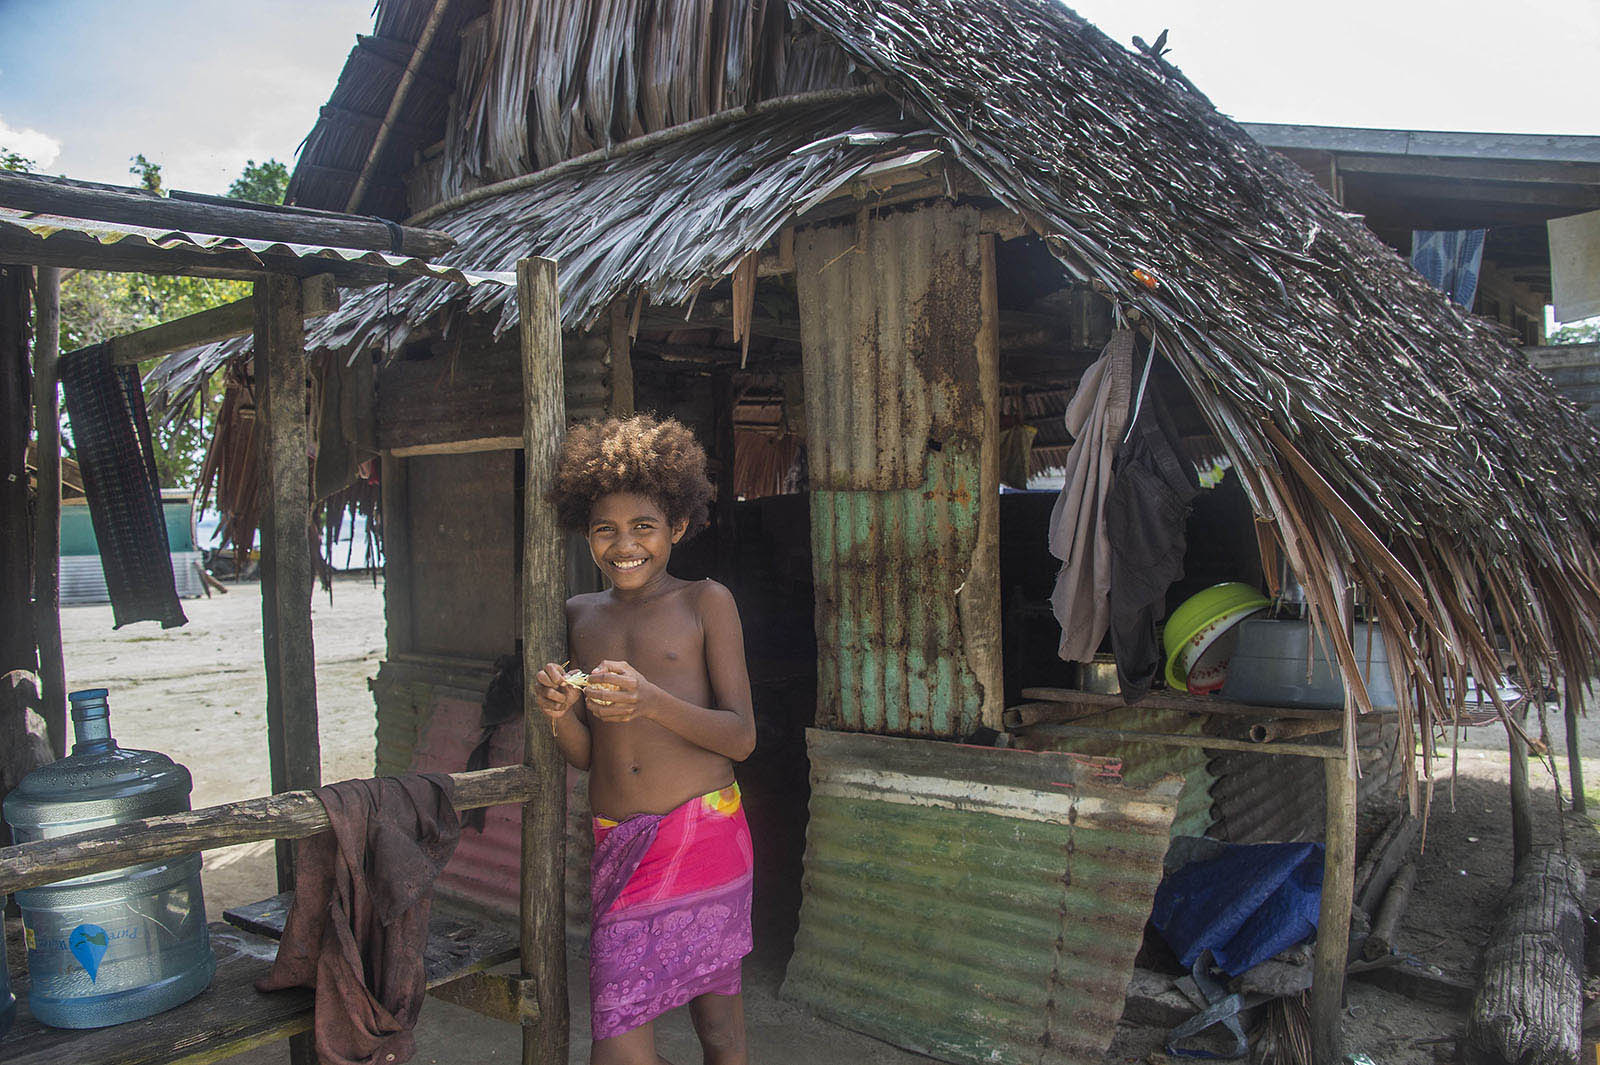 A young girl at home in the village of Mokereng - across the bay from the Australian Lombrum asylum seeker detention centre. © Brian Cassey